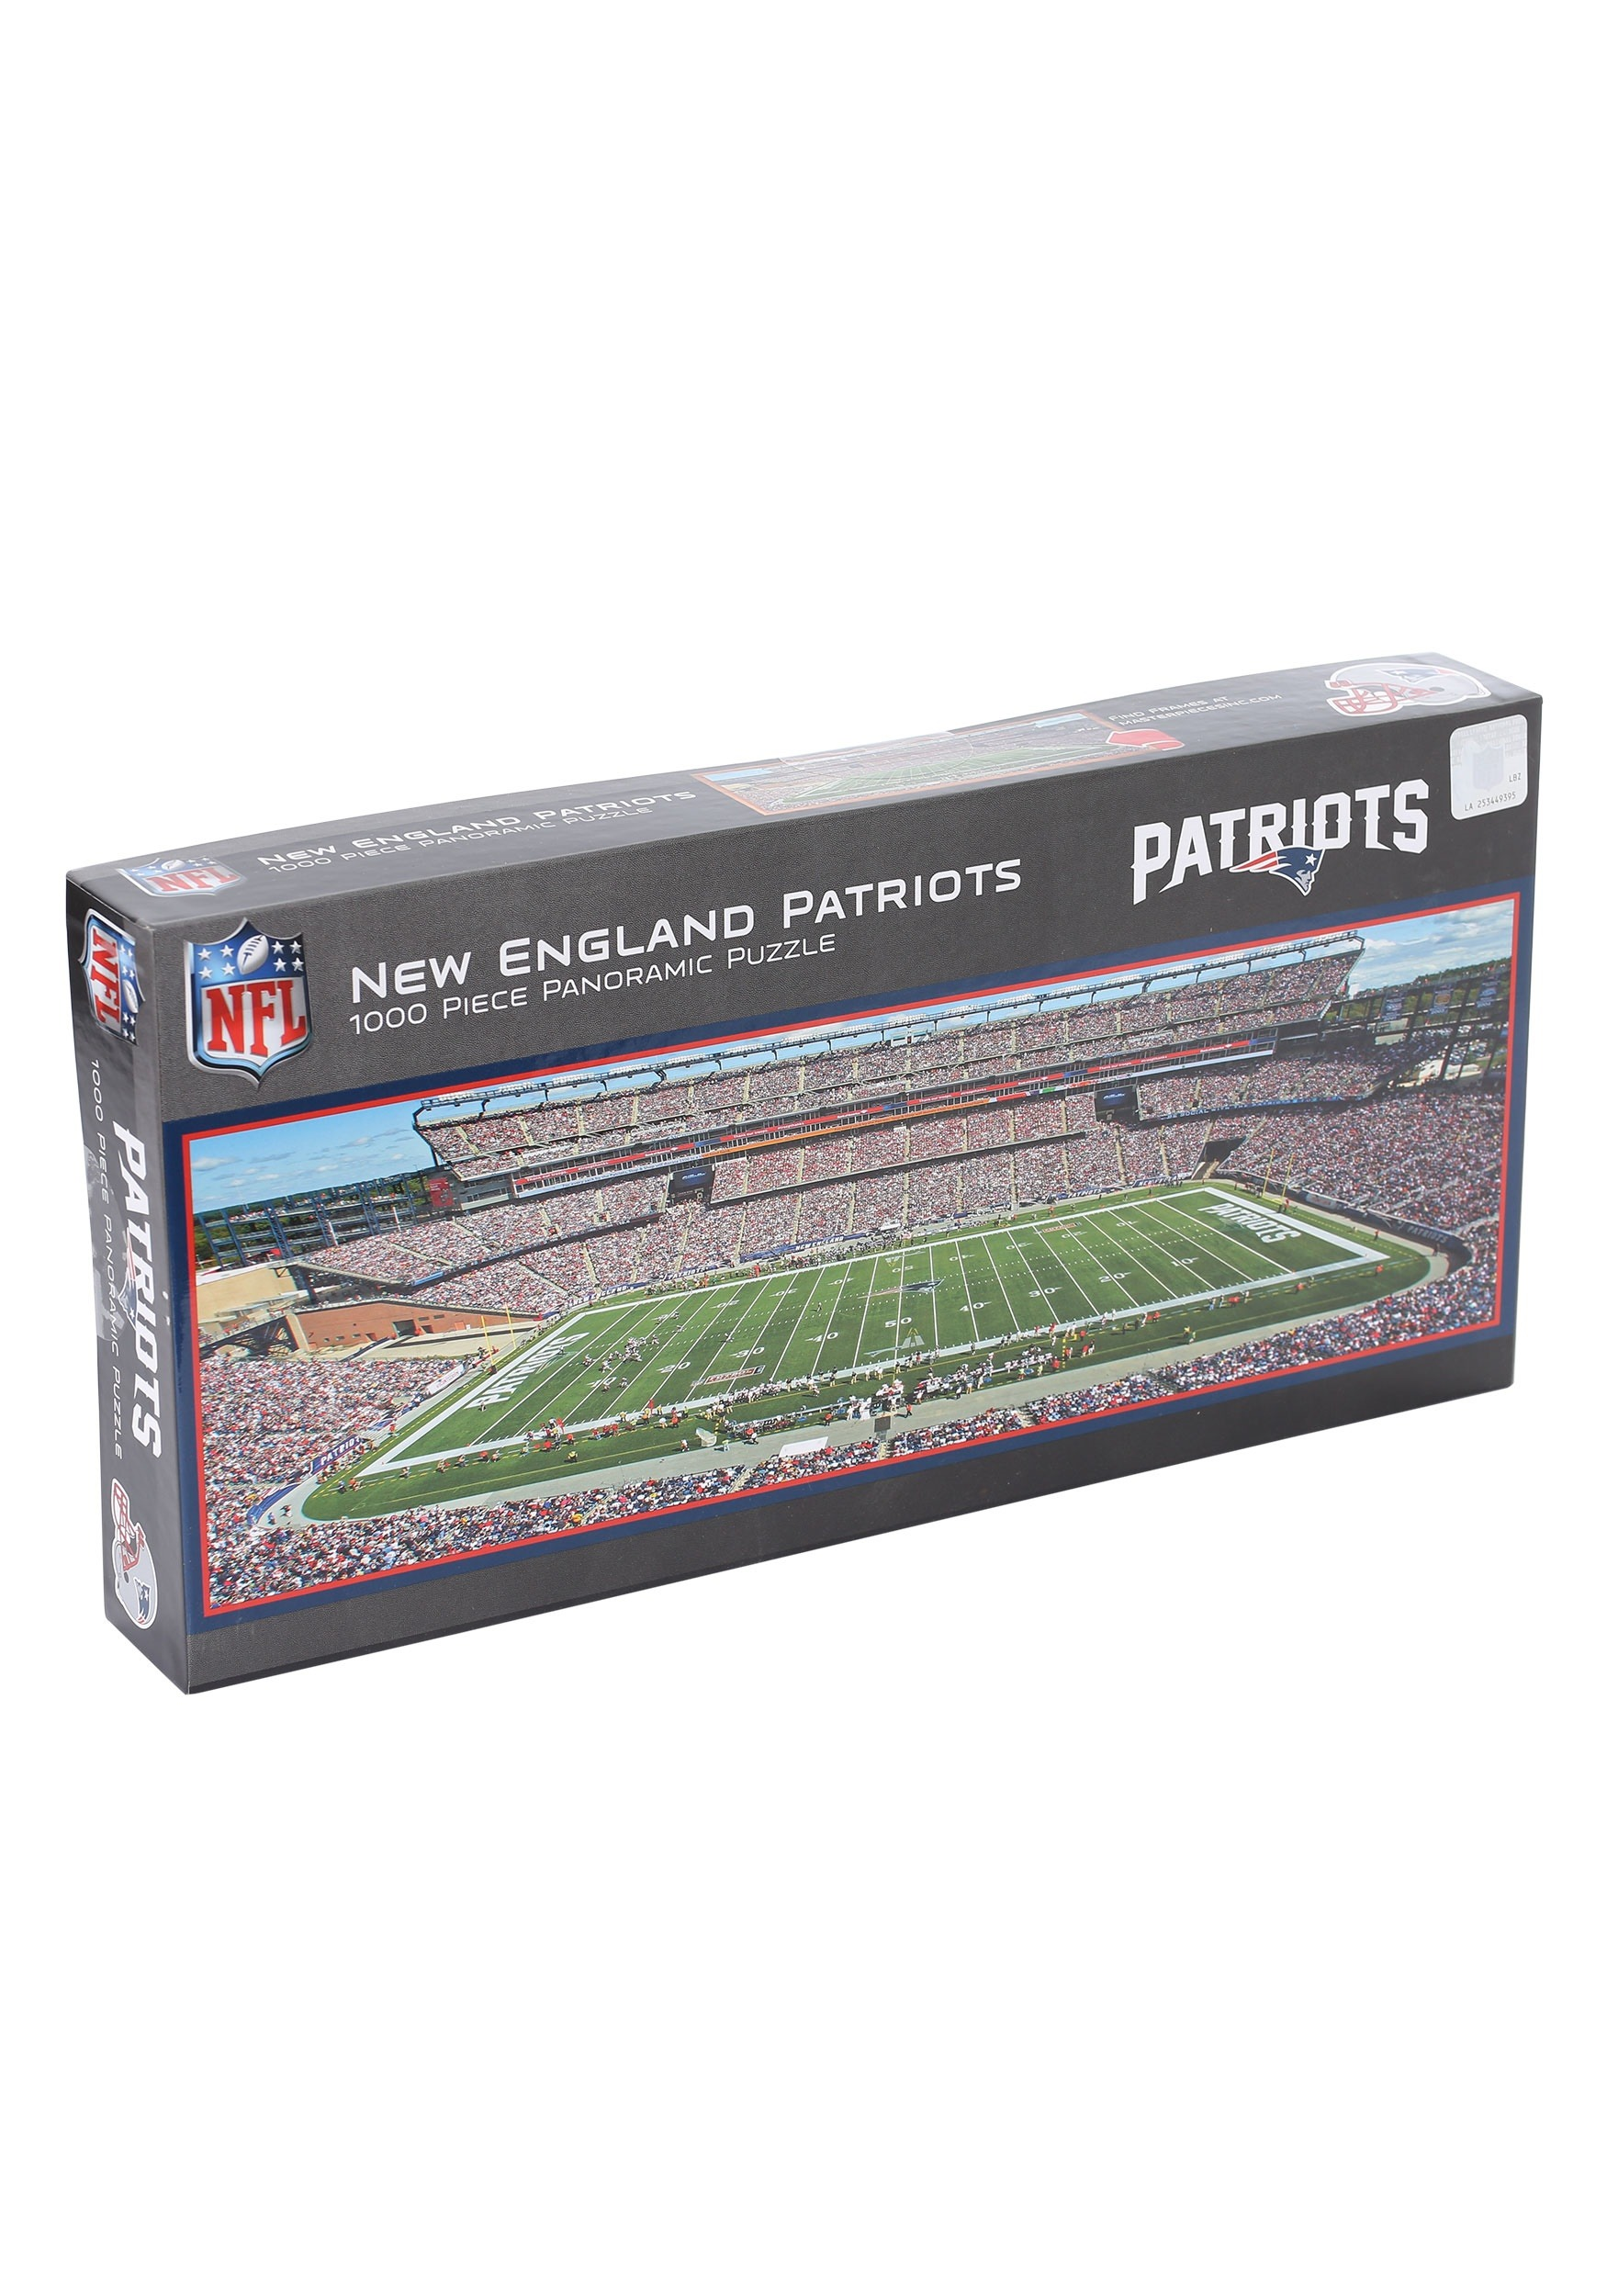 NEW ENGLAND PATRIOTS STADIUM JIGSAW PUZZLE